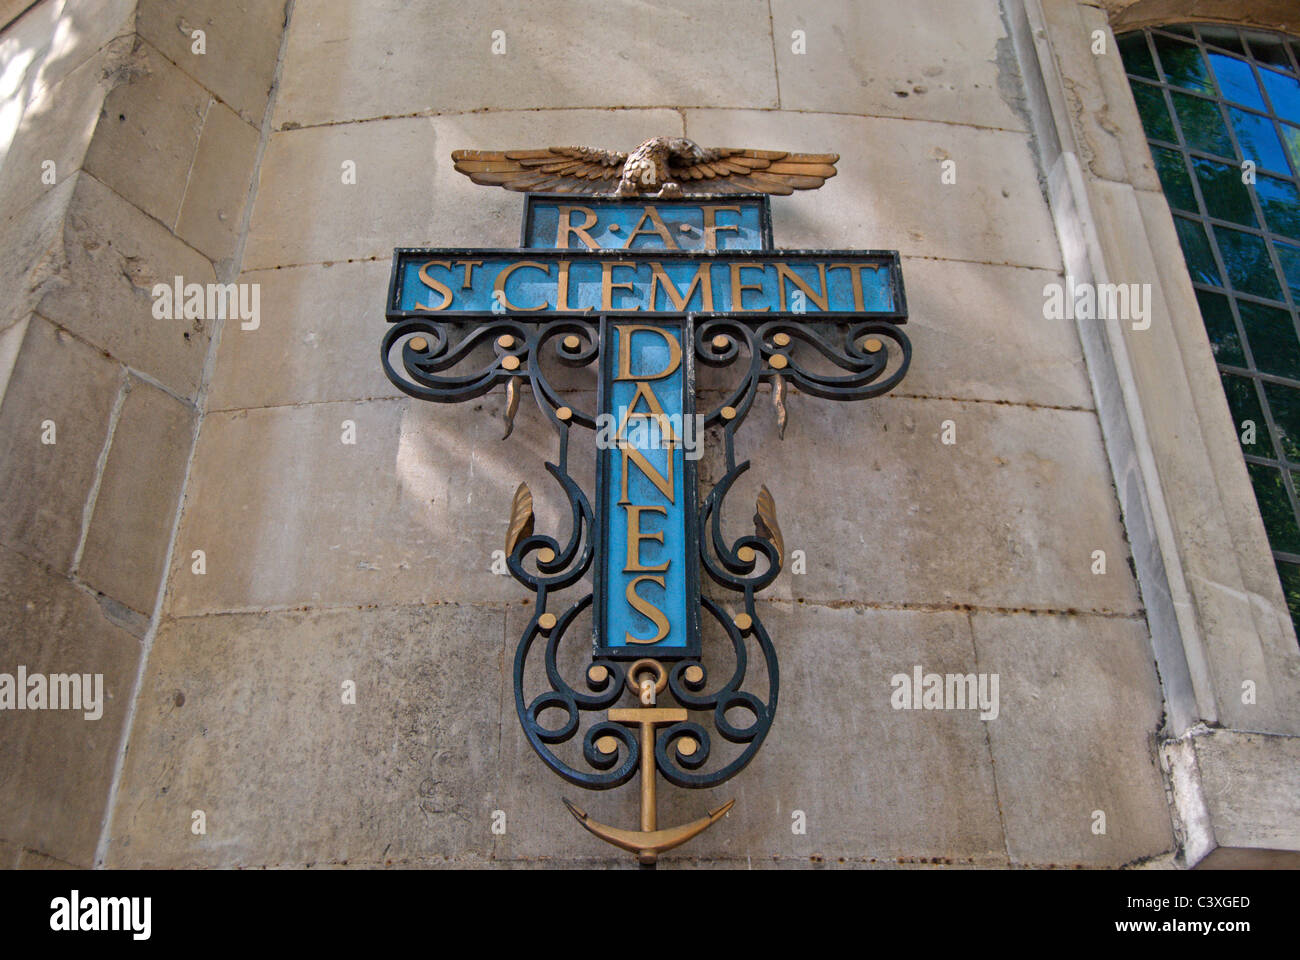 cross of the crucifixion bearing the name of the church of st clement danes, the raf church, in fleet street, london, - Stock Image